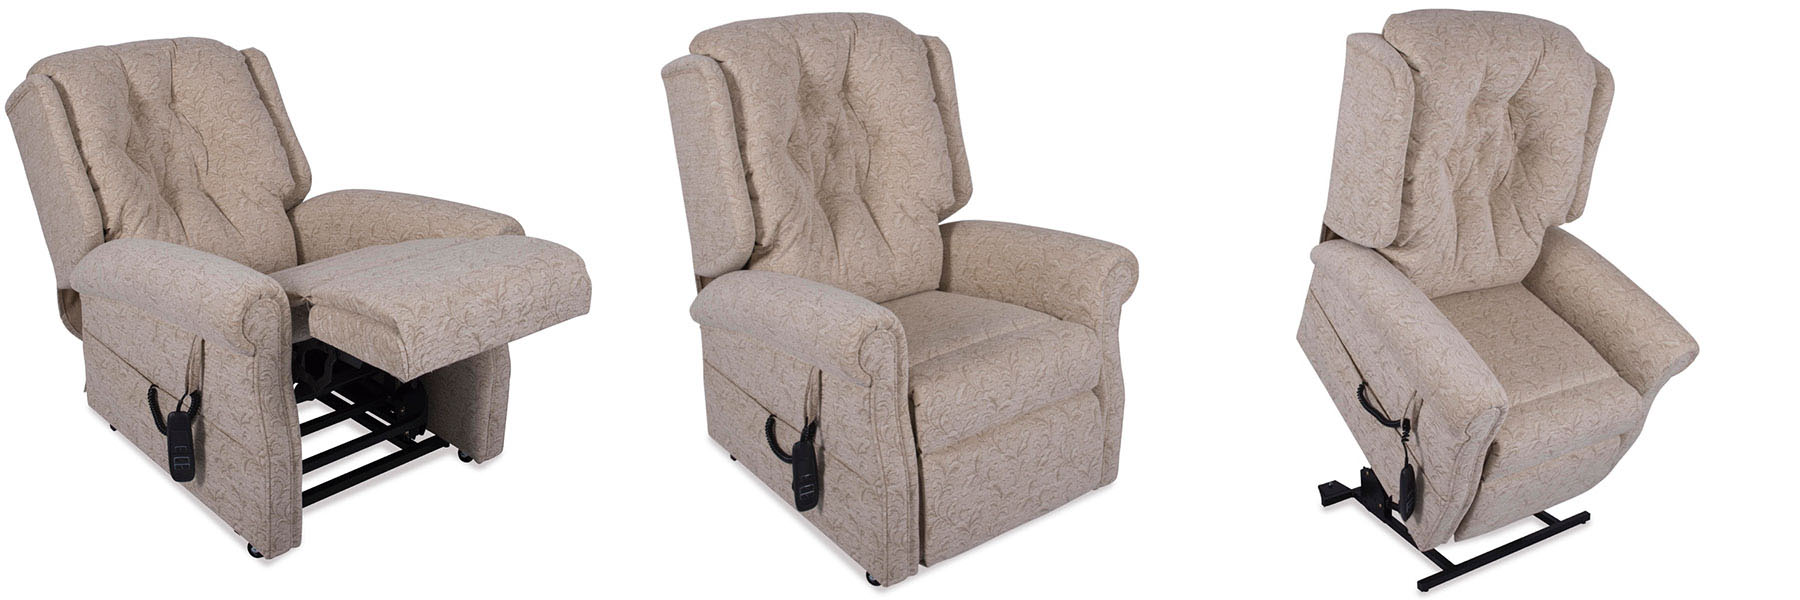 The Hampton rise and recliner chair